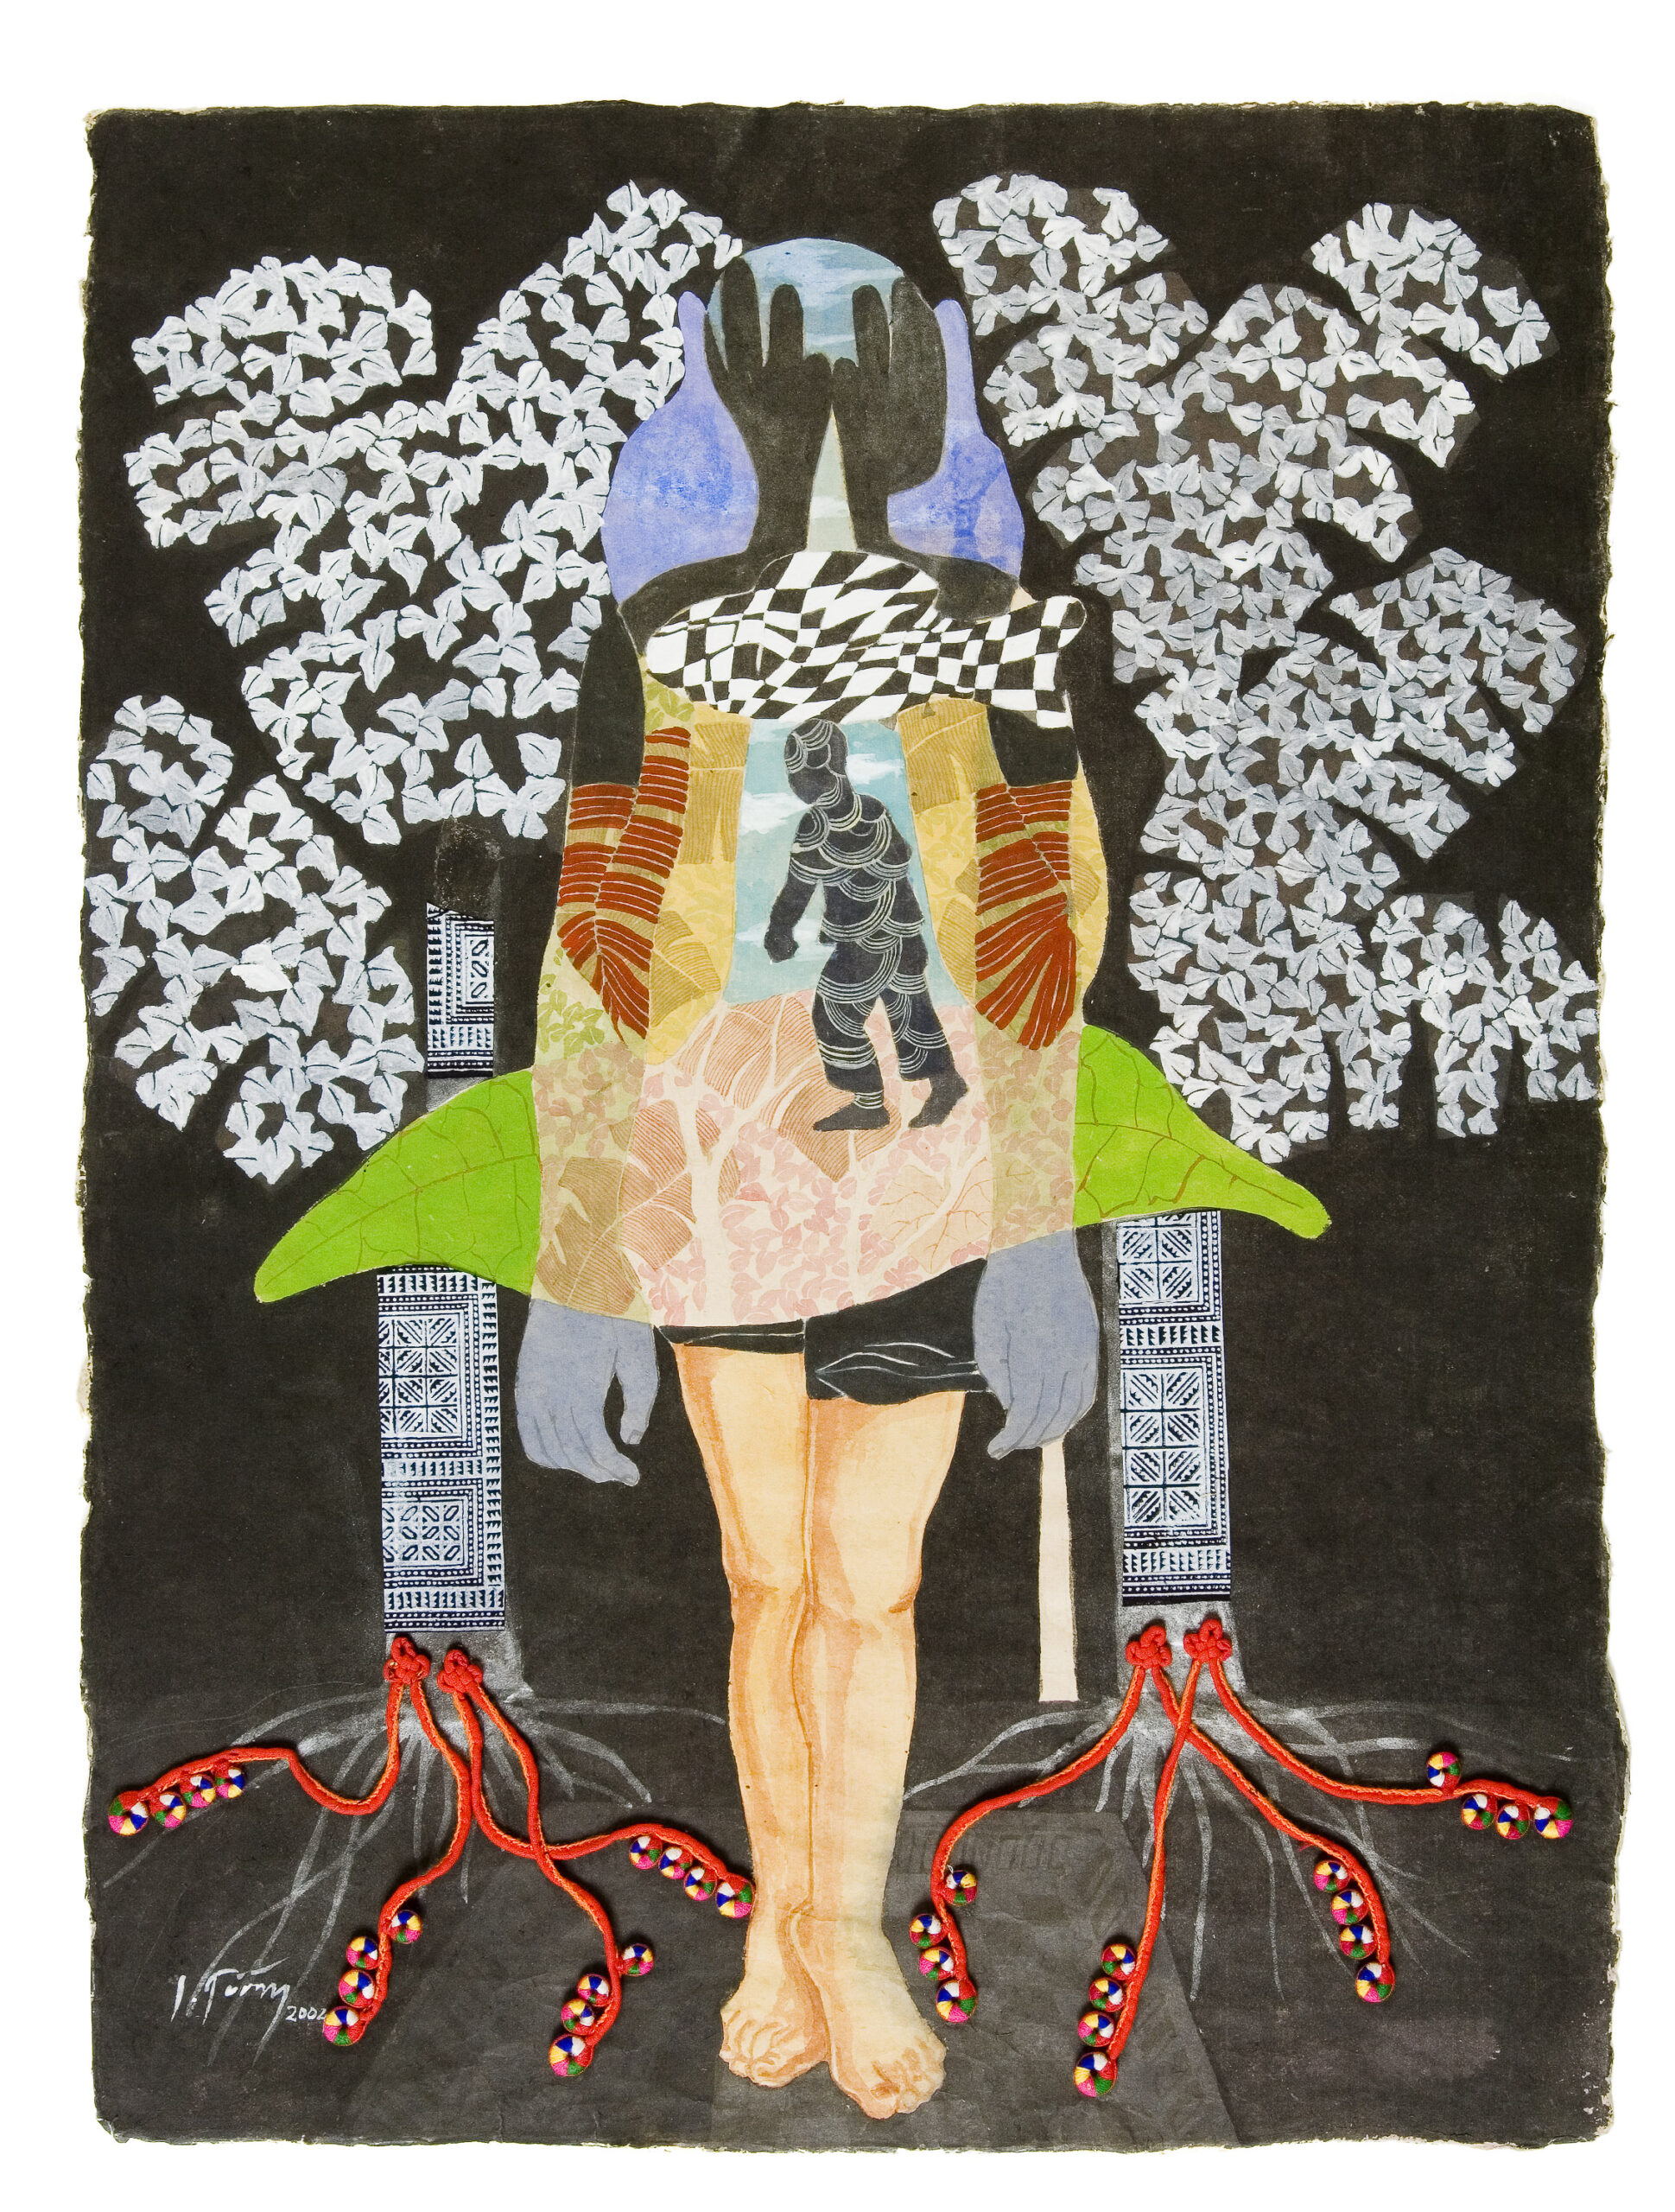 Gardens of Eden by Dinh Thi Tham Poong, watercolour on handmade paper, 2004, 80 x 60 cm